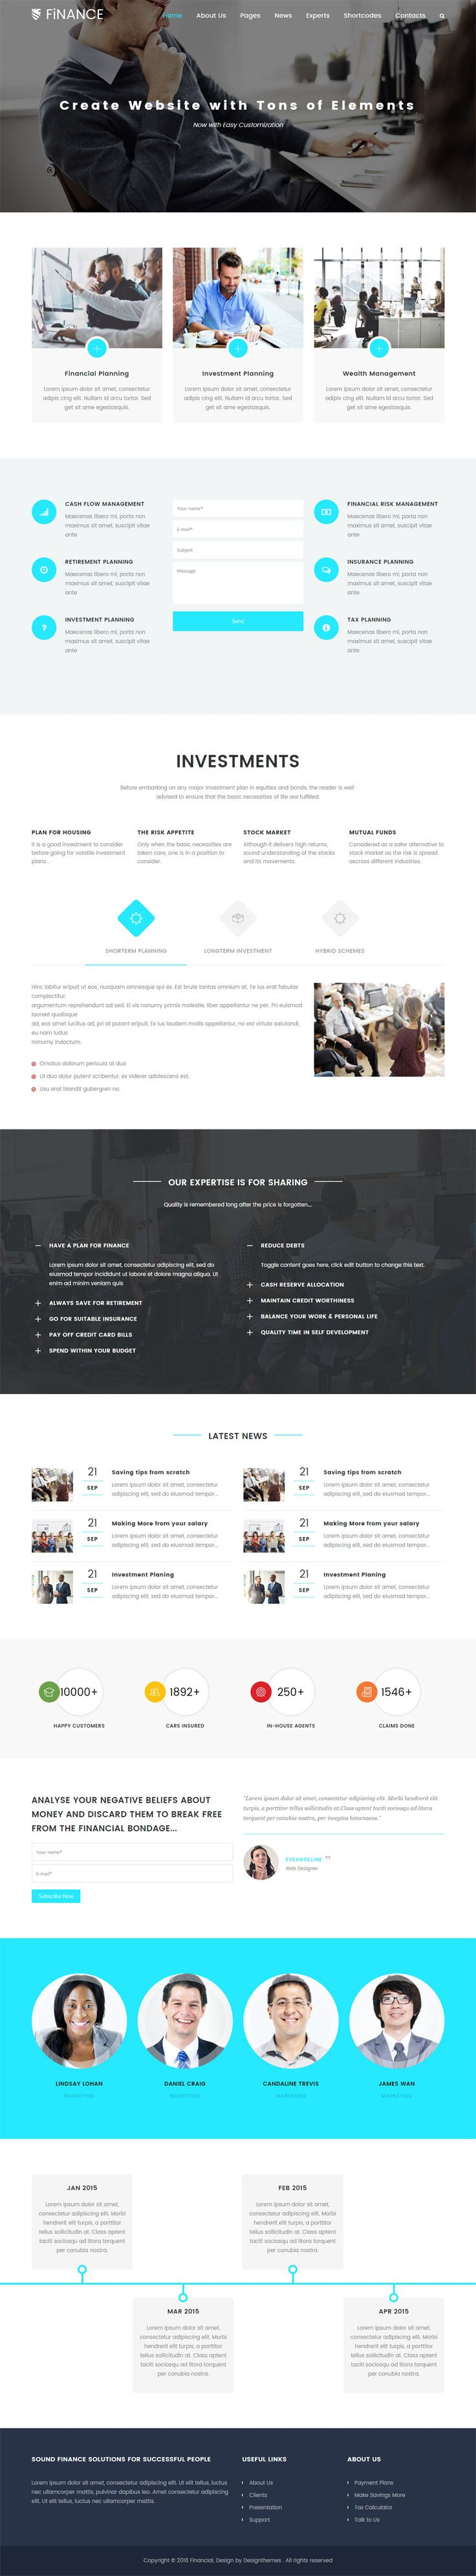 #Finance WordPress #theme is a dazzling and efficient WordPress theme for creating investment agency, consultancy, mutual fund and all financial related websites.